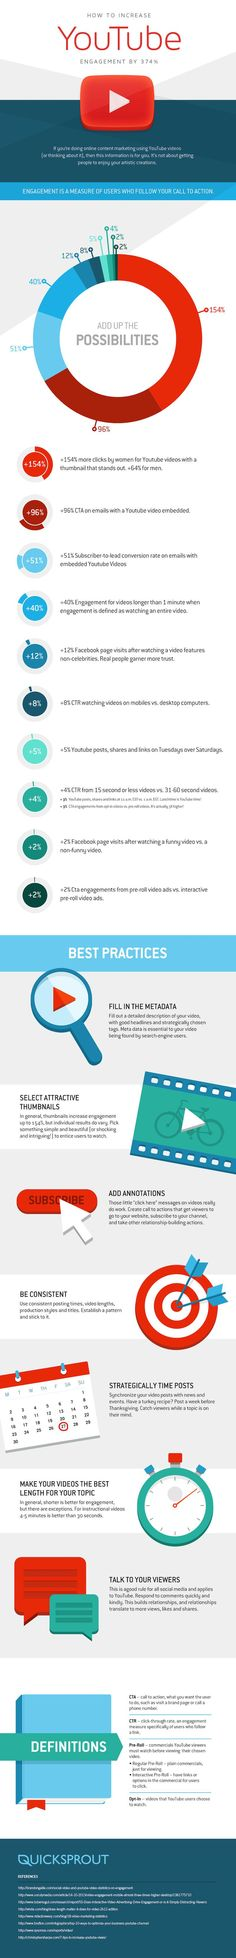 How do you increase engagement on YouTube [infographic]